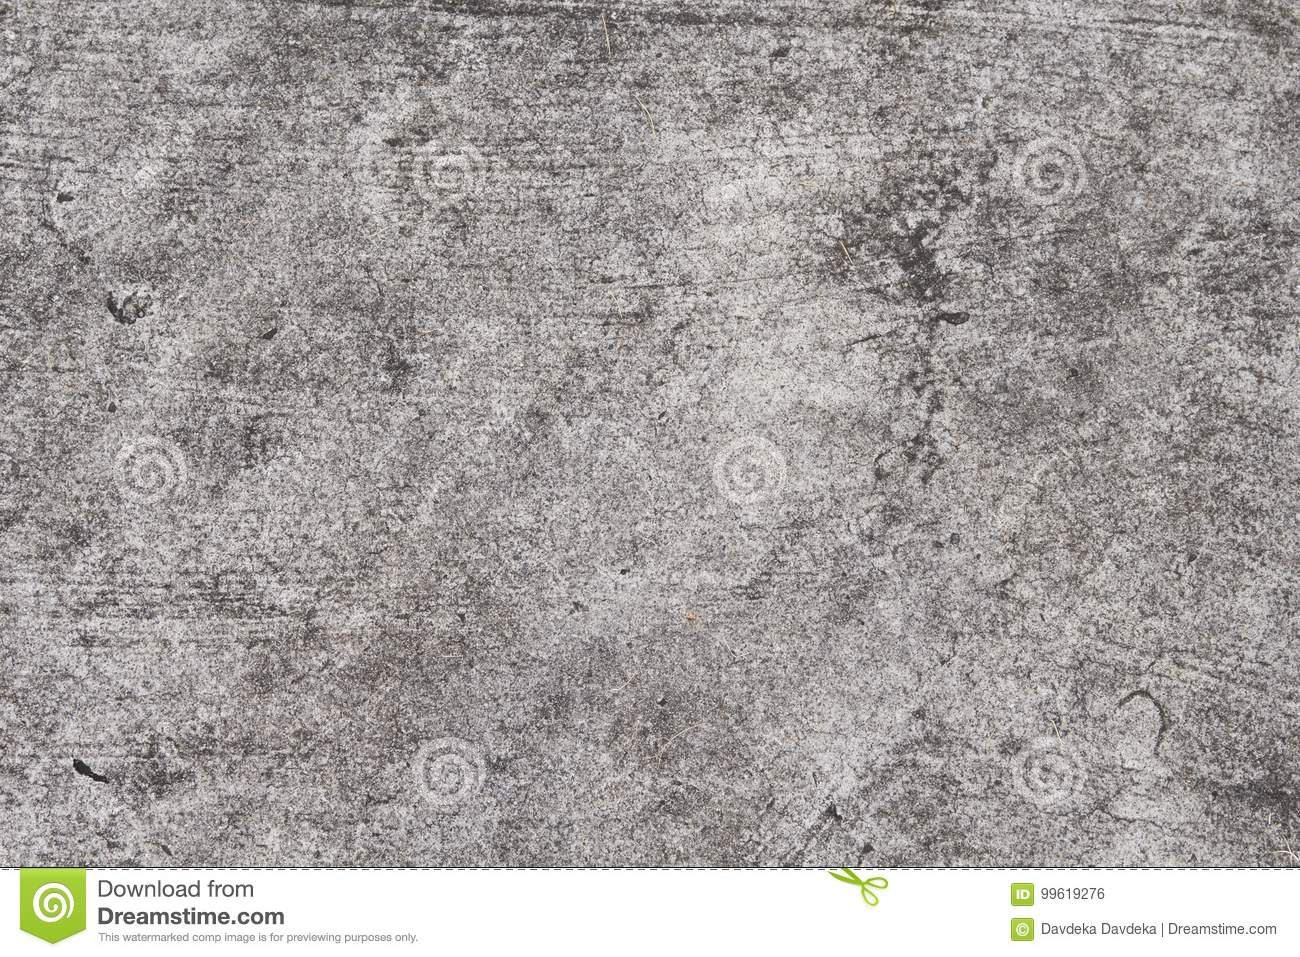 Grunge concrete texture. Grey asphalt road top view photo. Distressed and obsolete background texture.